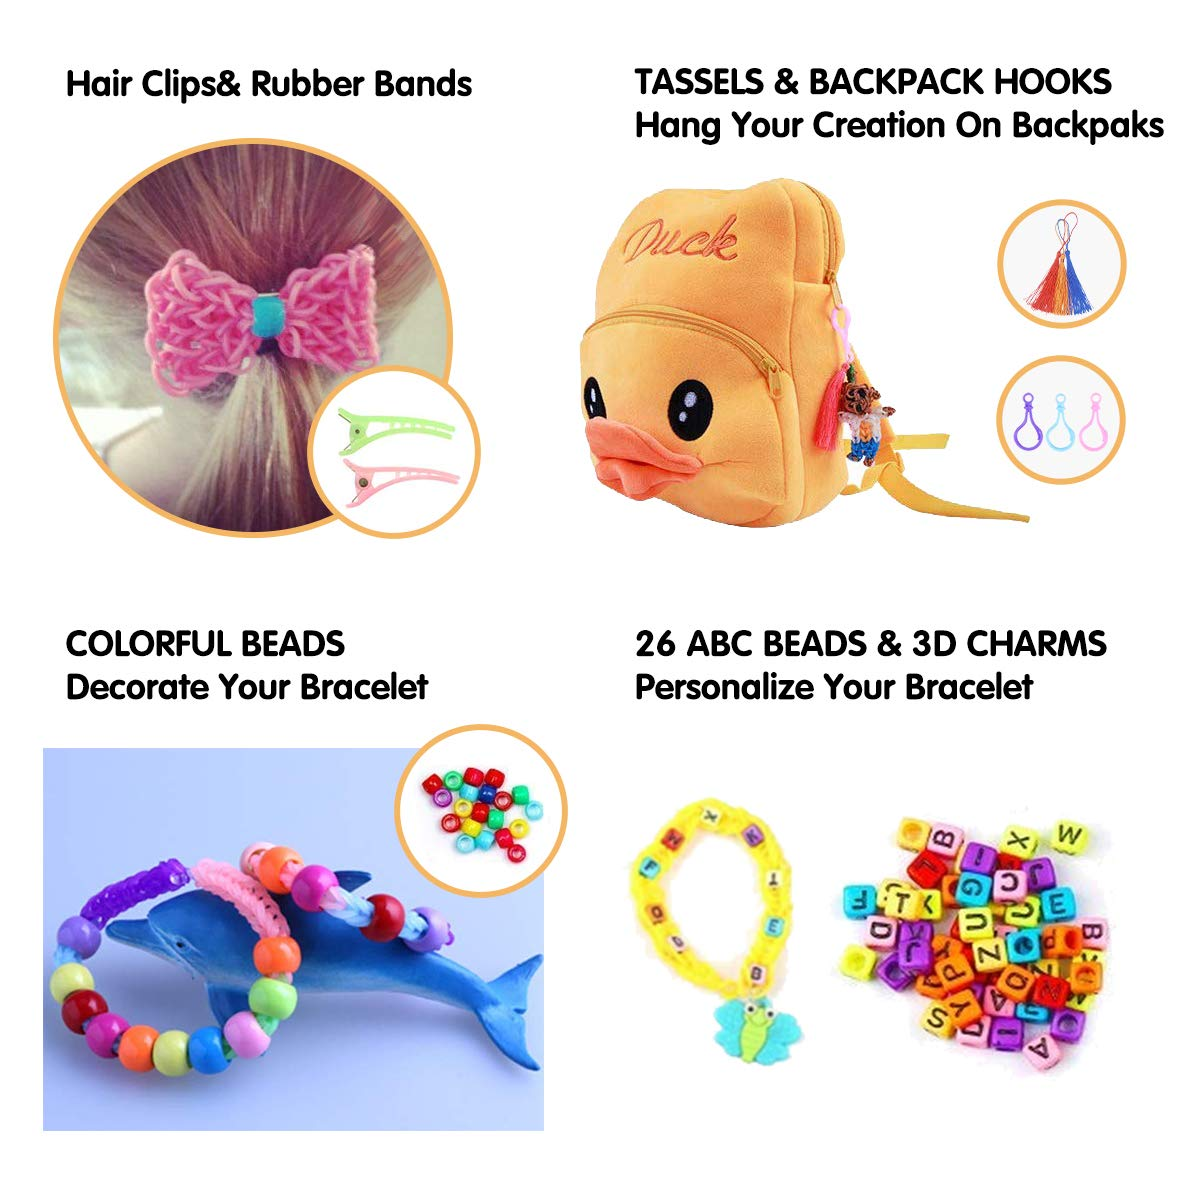 Colorful Over 2000 Loom Bands Rainbow Rubber Bands Refill Kit 24/S-Clips,25/Beads,26/ABC Beads,6 Charms,3/Backpack Hooks,3 Tassels,6/Crochet Hooks,3 Hair Clips,1 Knitter,1 ABC Sticker,etc